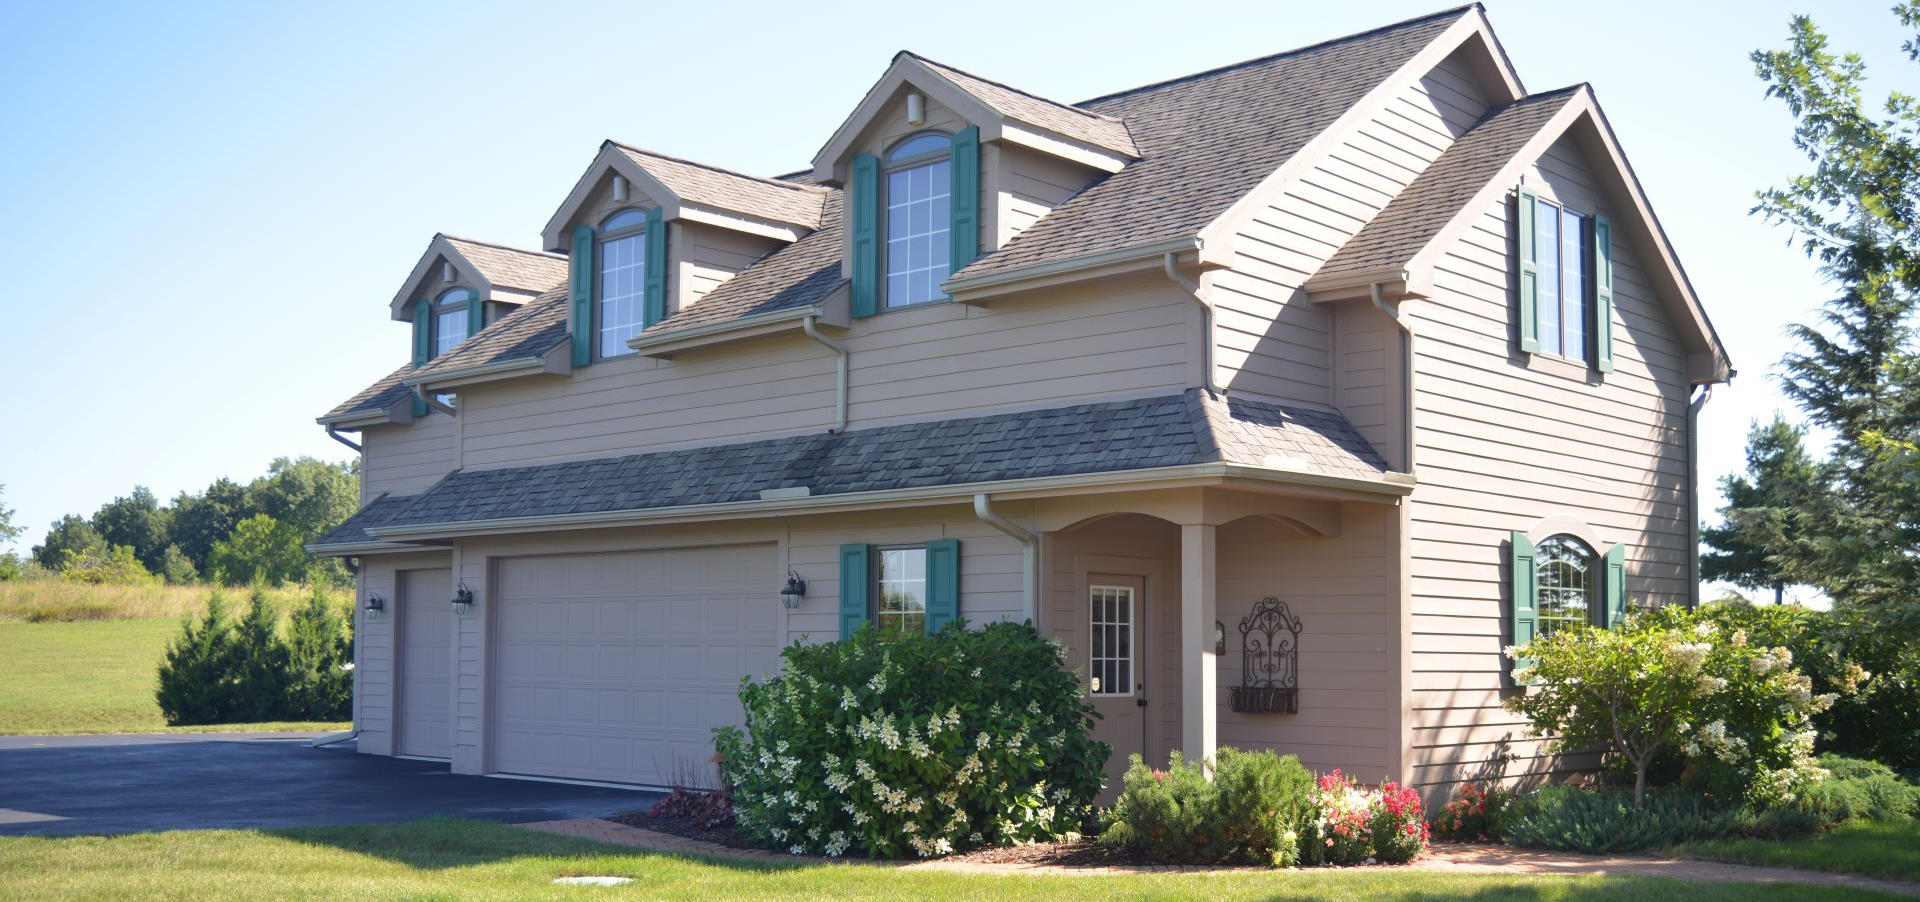 Exterior Renovations and Home Additions Southeast MI